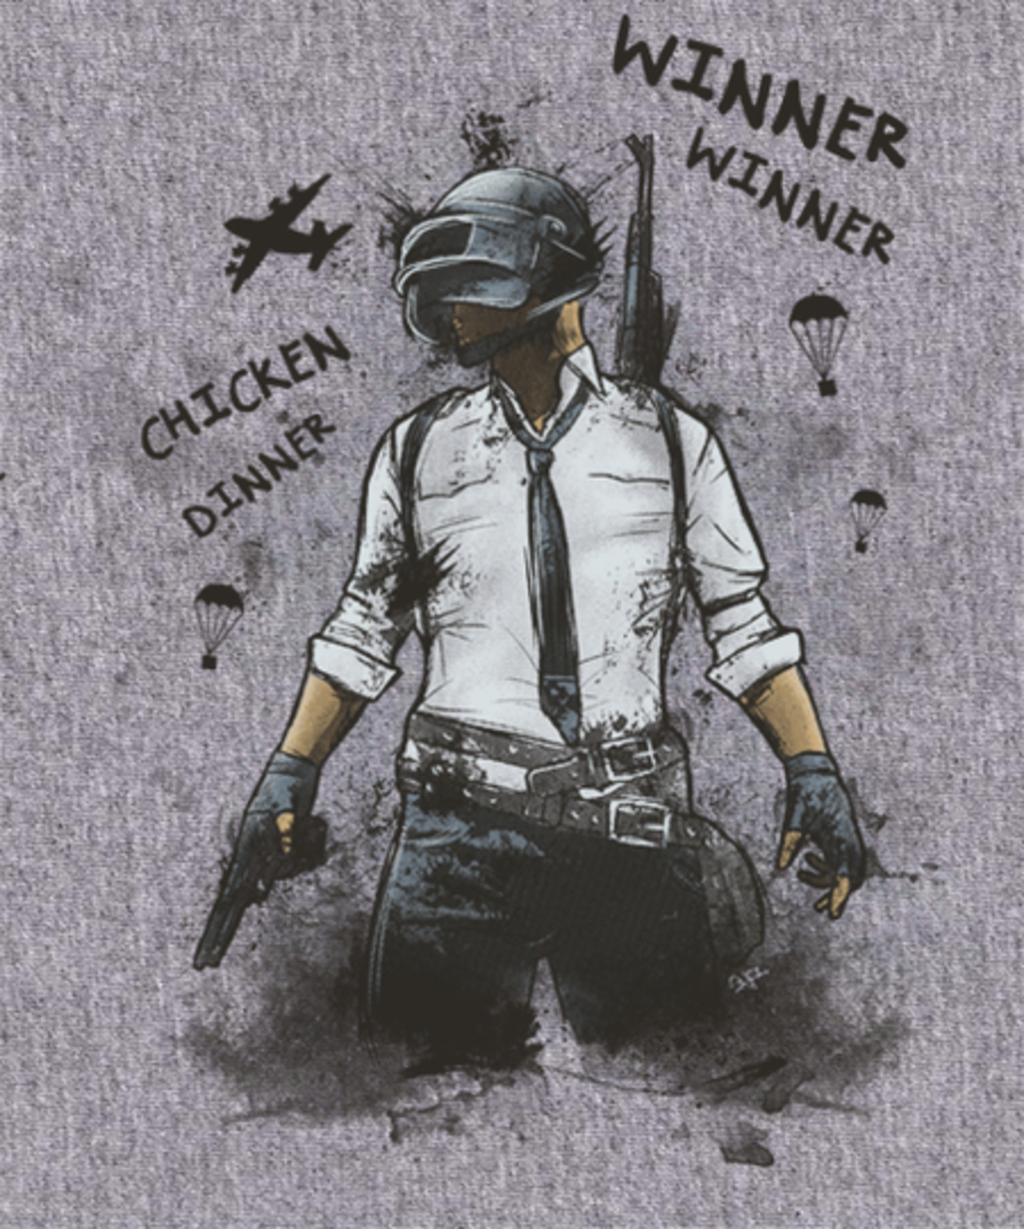 Qwertee: Winner Winner Chicken Dinner